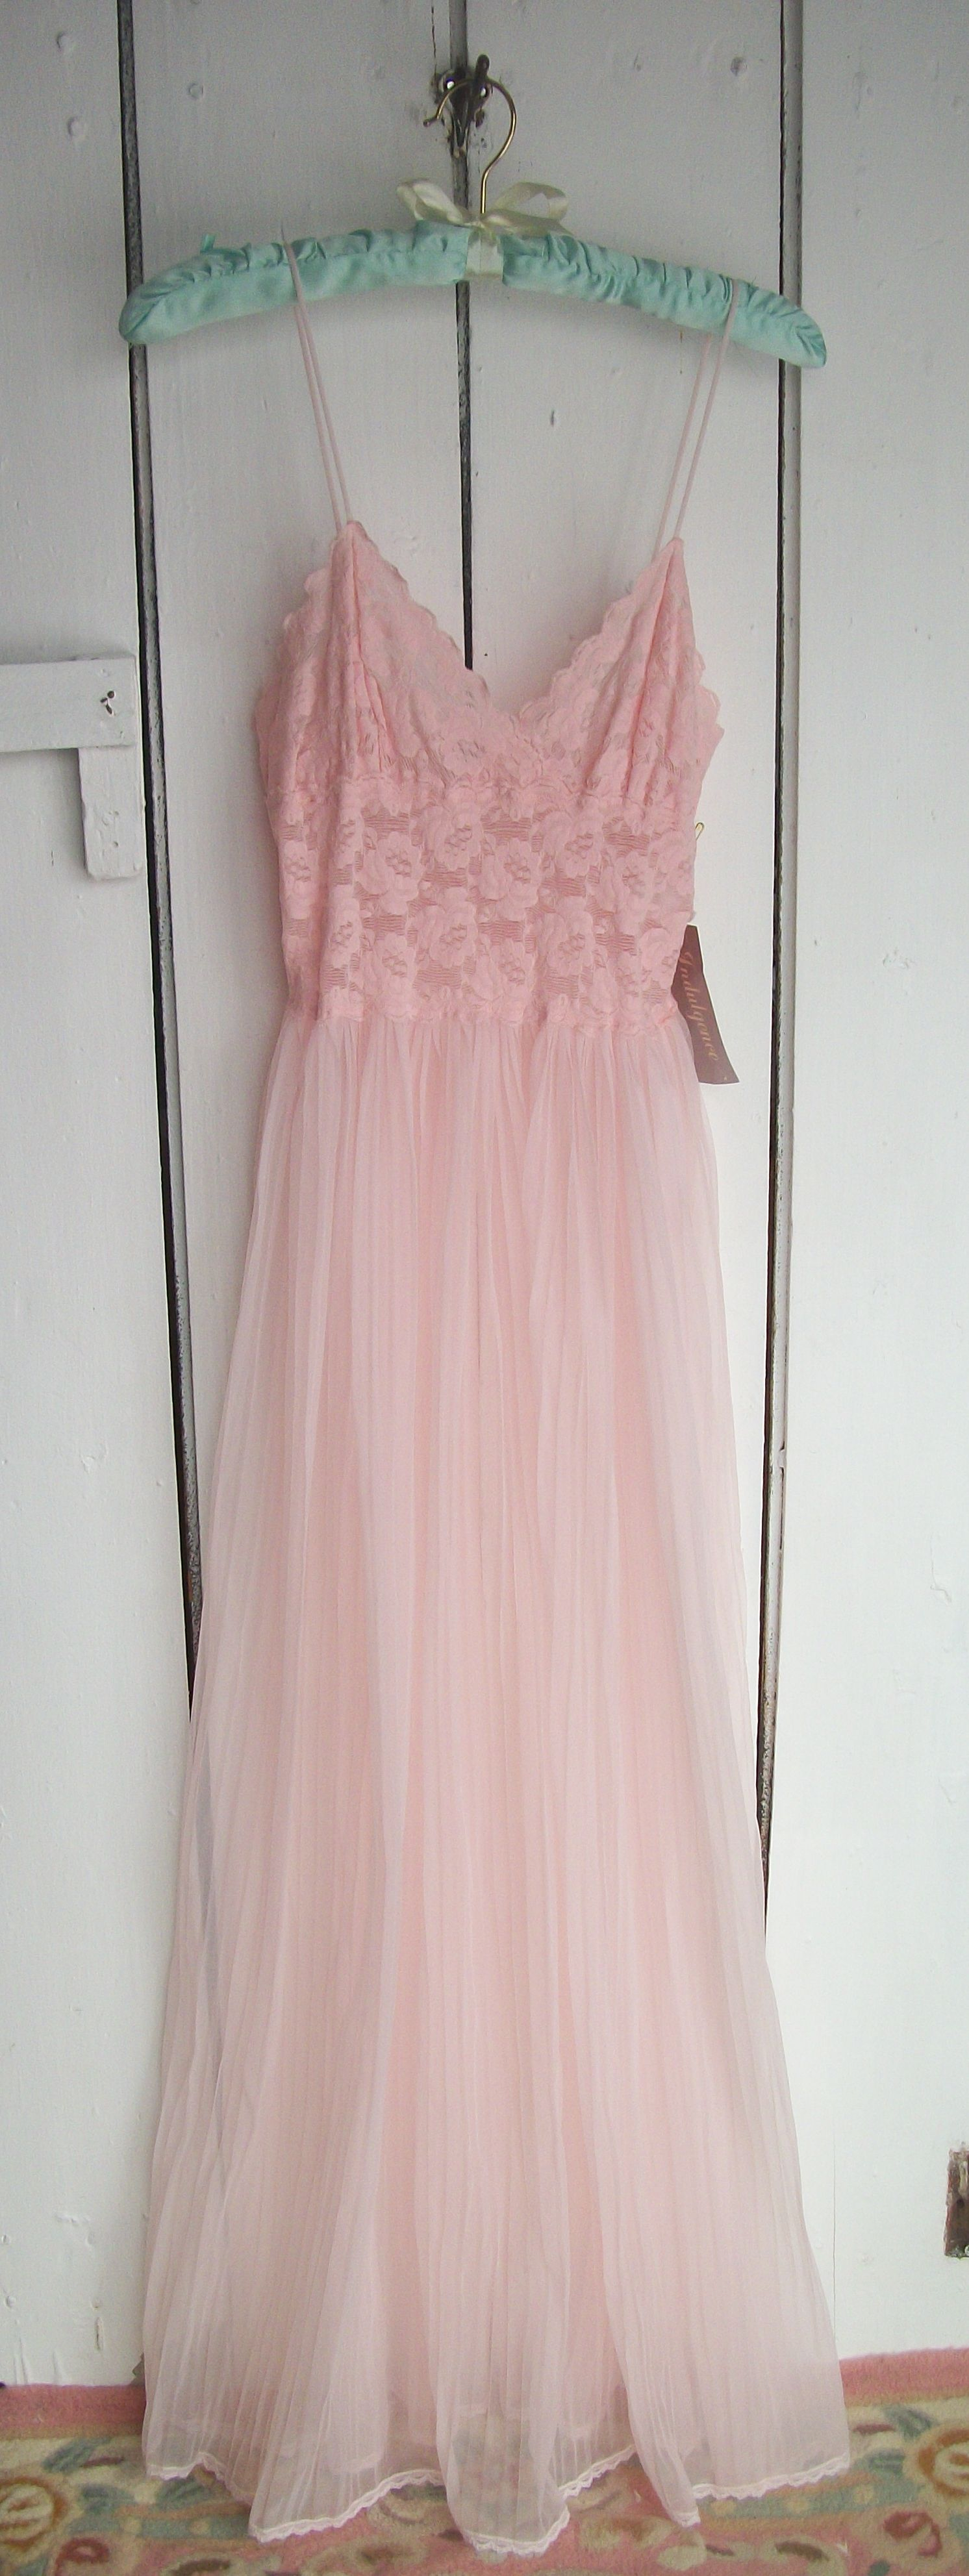 VINTAGE NOS COTTON CANDY PINK SHEER CHIFFON LONG NIGHTGOWN PLEATS ...